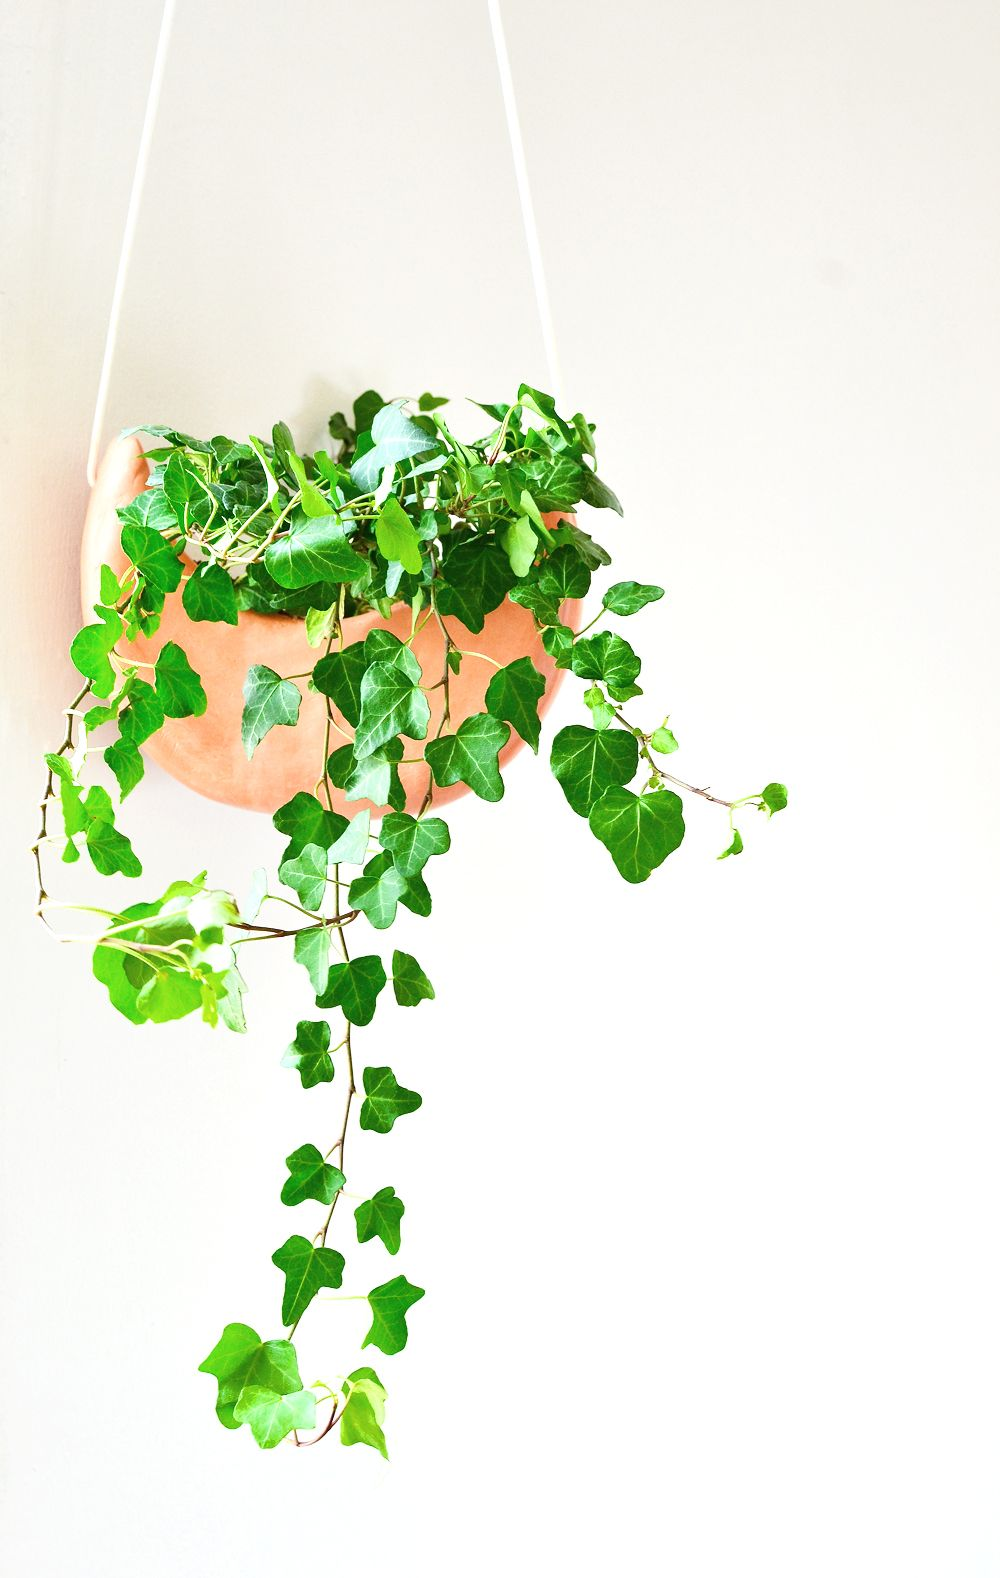 Ikea Plantation Diy Crescent Moon Hanging Planter